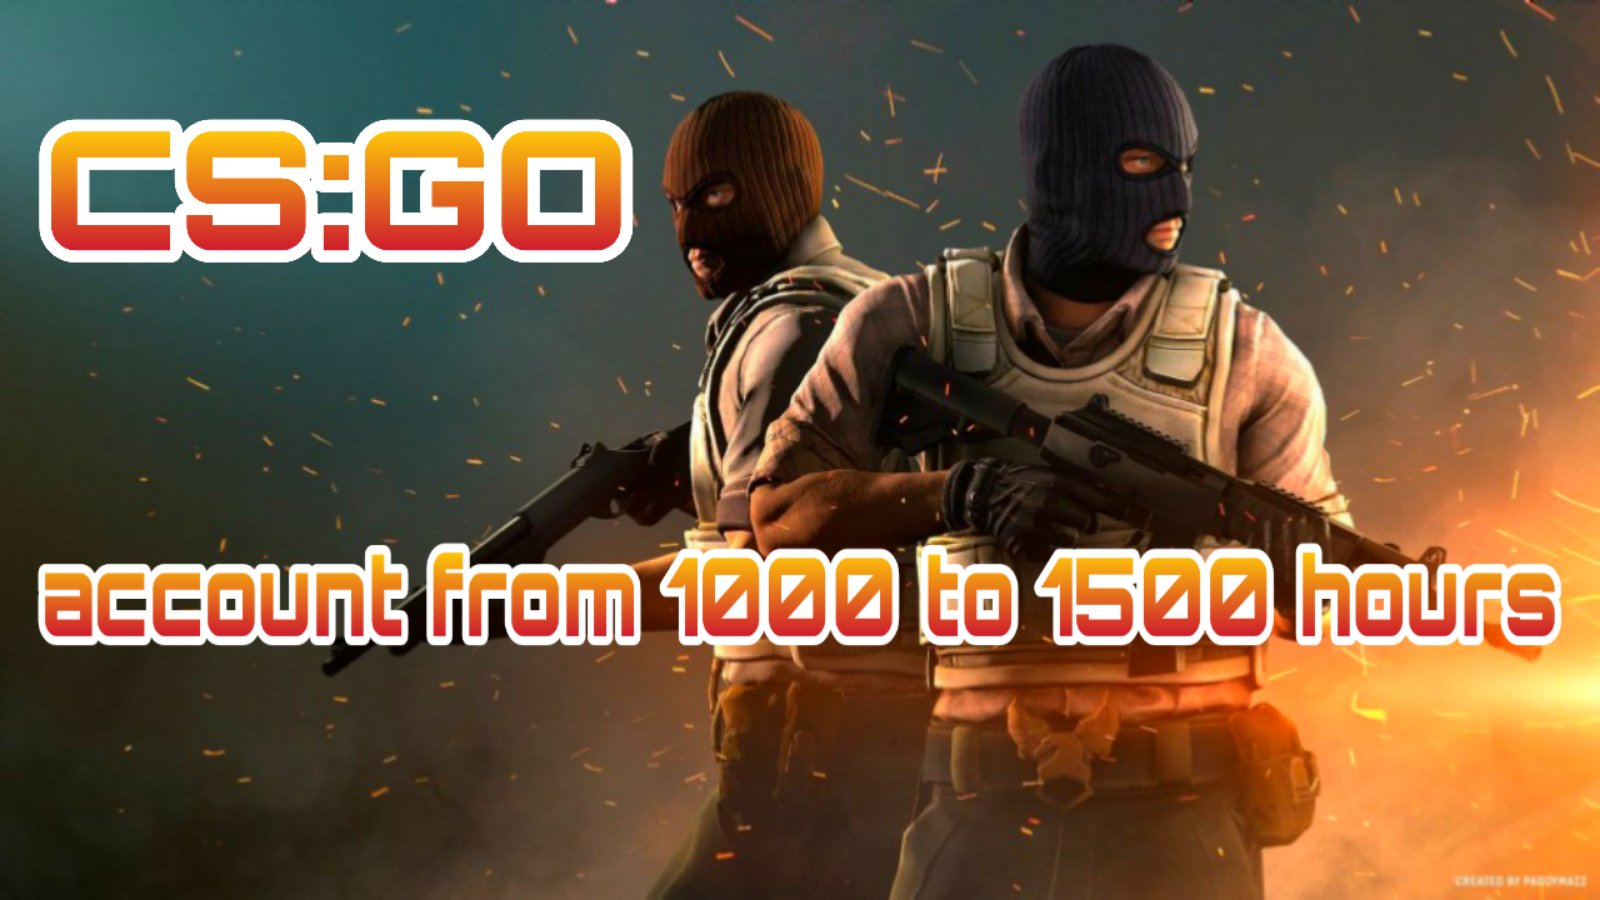 CS:GO account 🔥 from 1000 to 1500 hours ✅ First mail